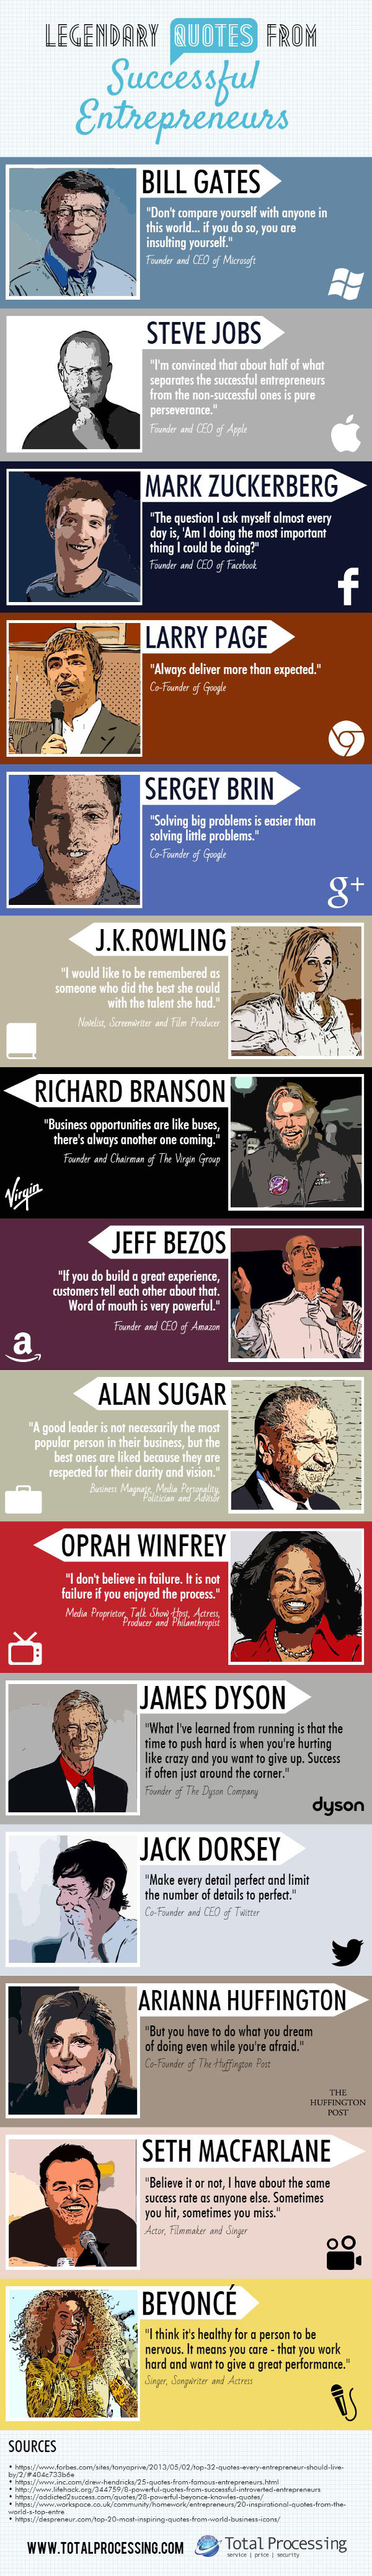 Infographic Quotes from Successful Legendary Entrepreneurs